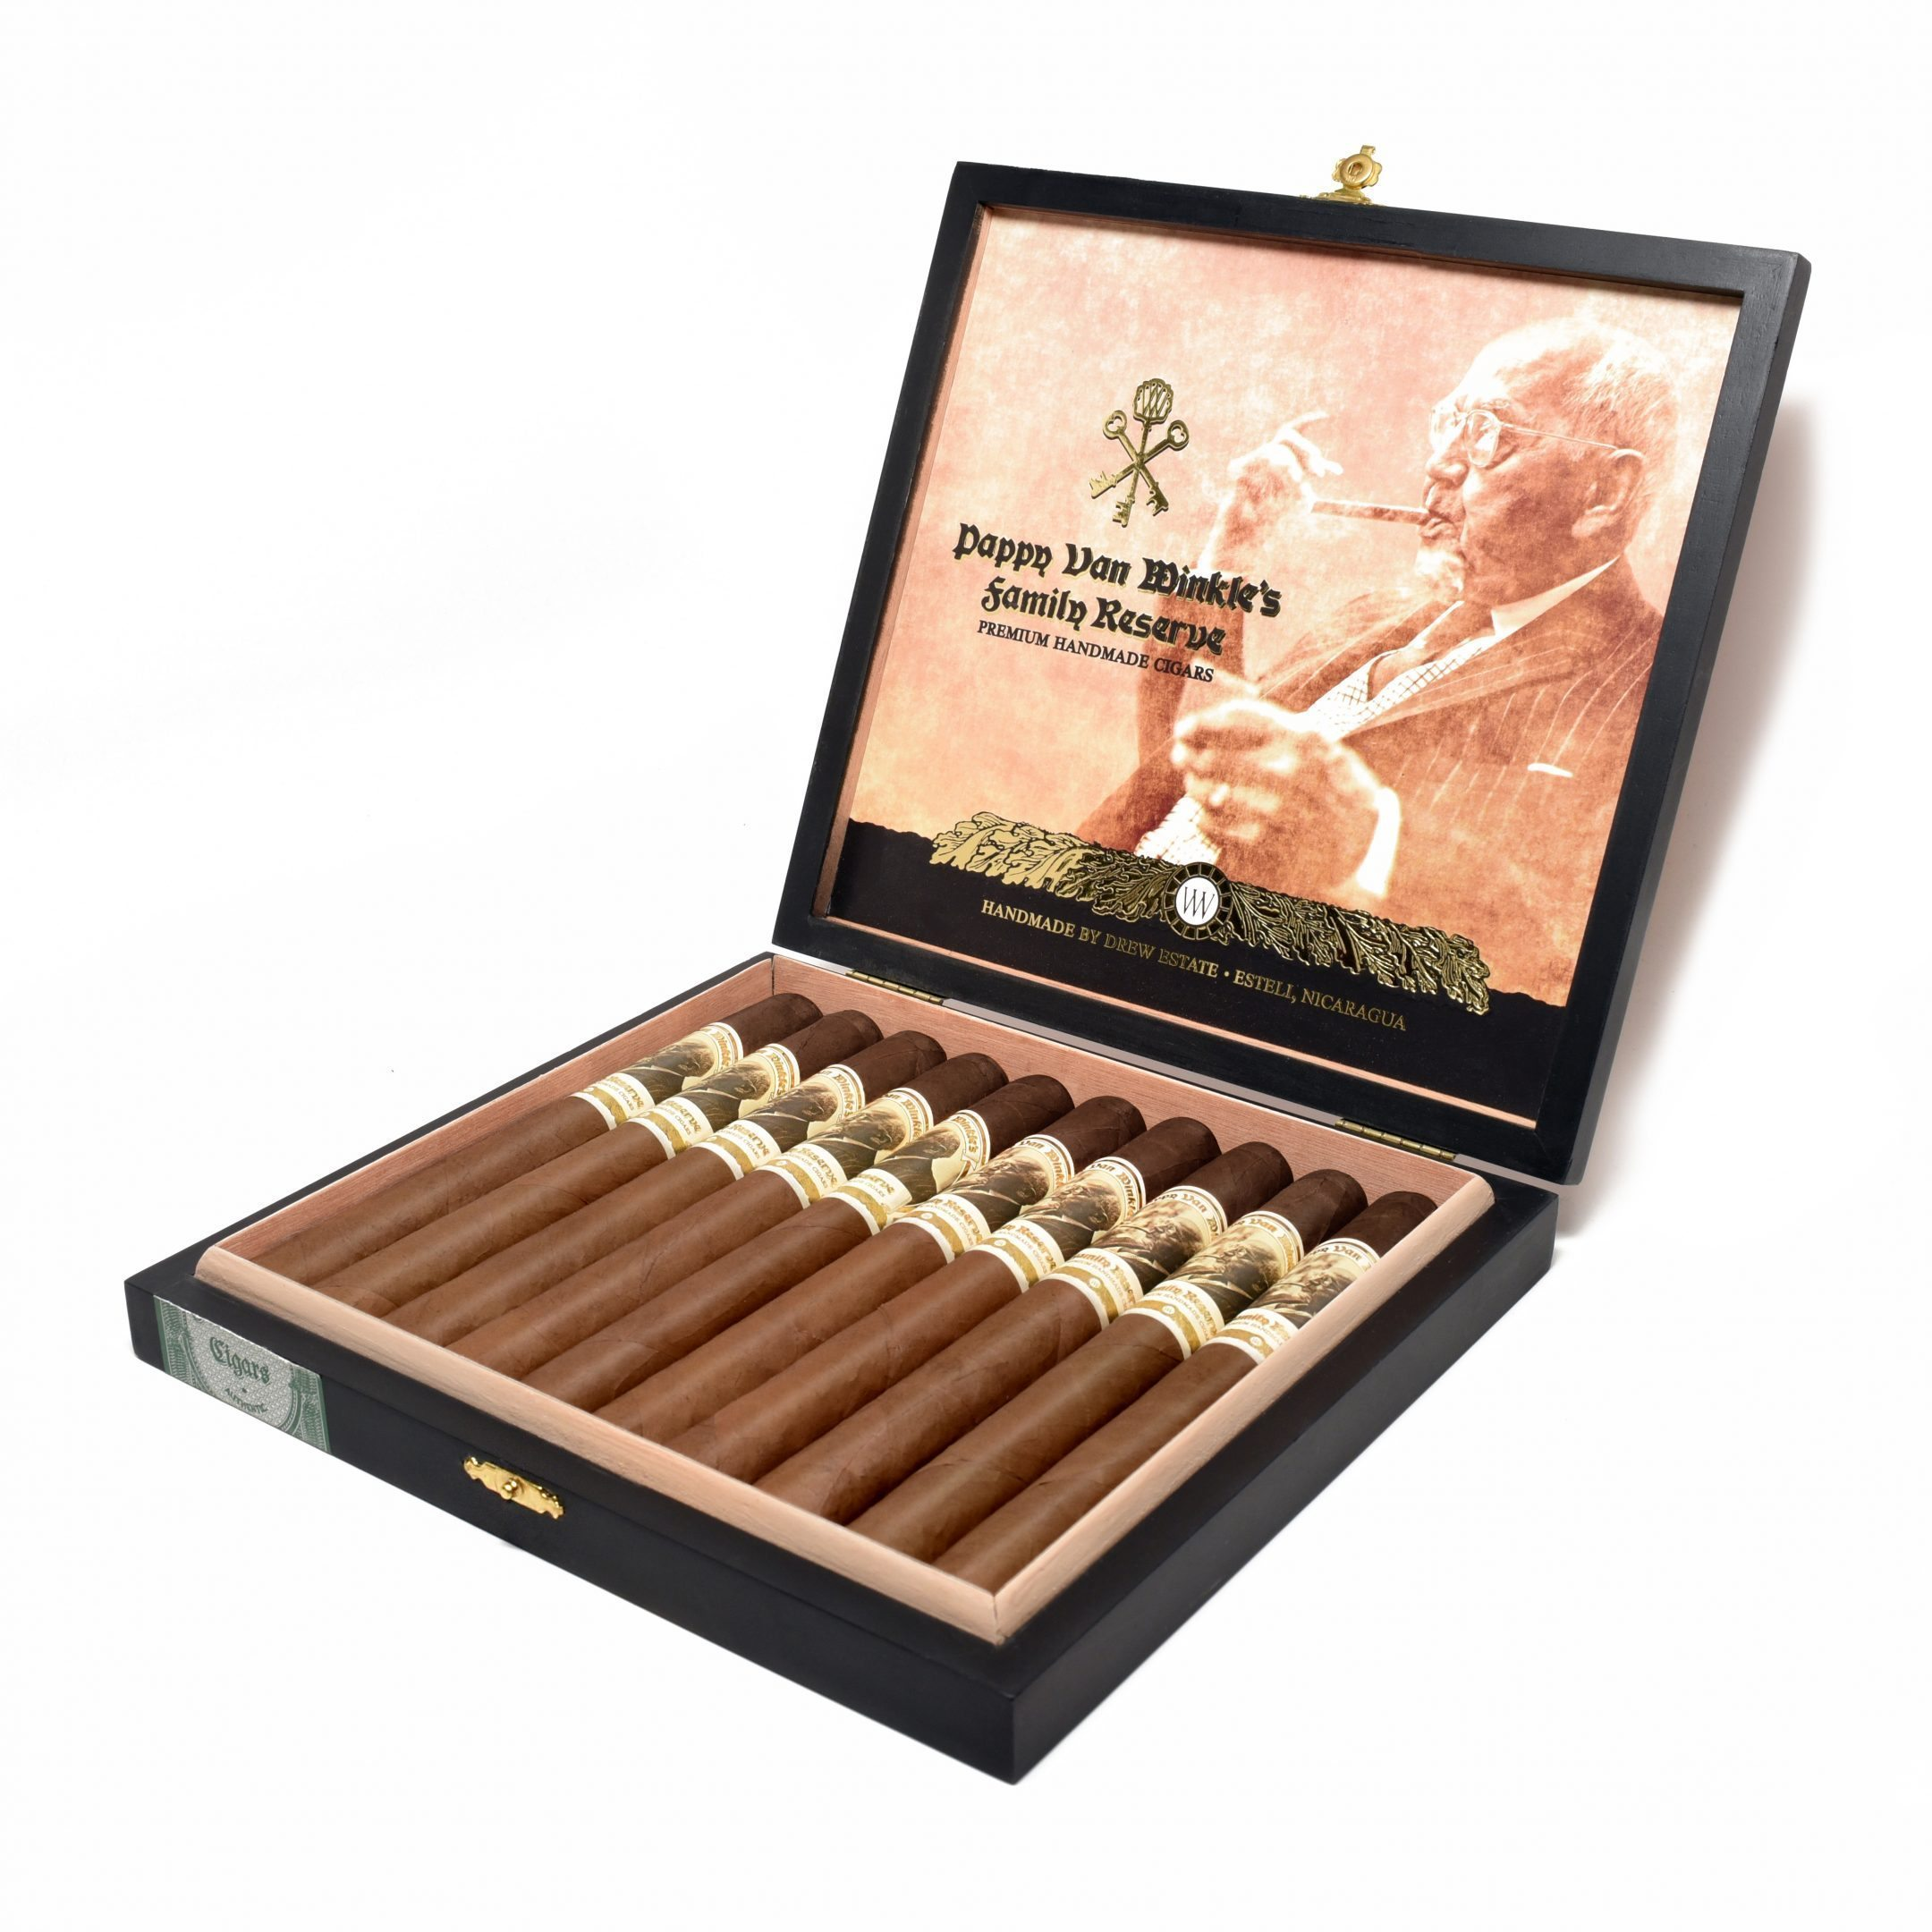 Cigar News: Drew Estate Announces Pappy Van Winkle Family Reserve Churchill and Pappy Drew Limitada